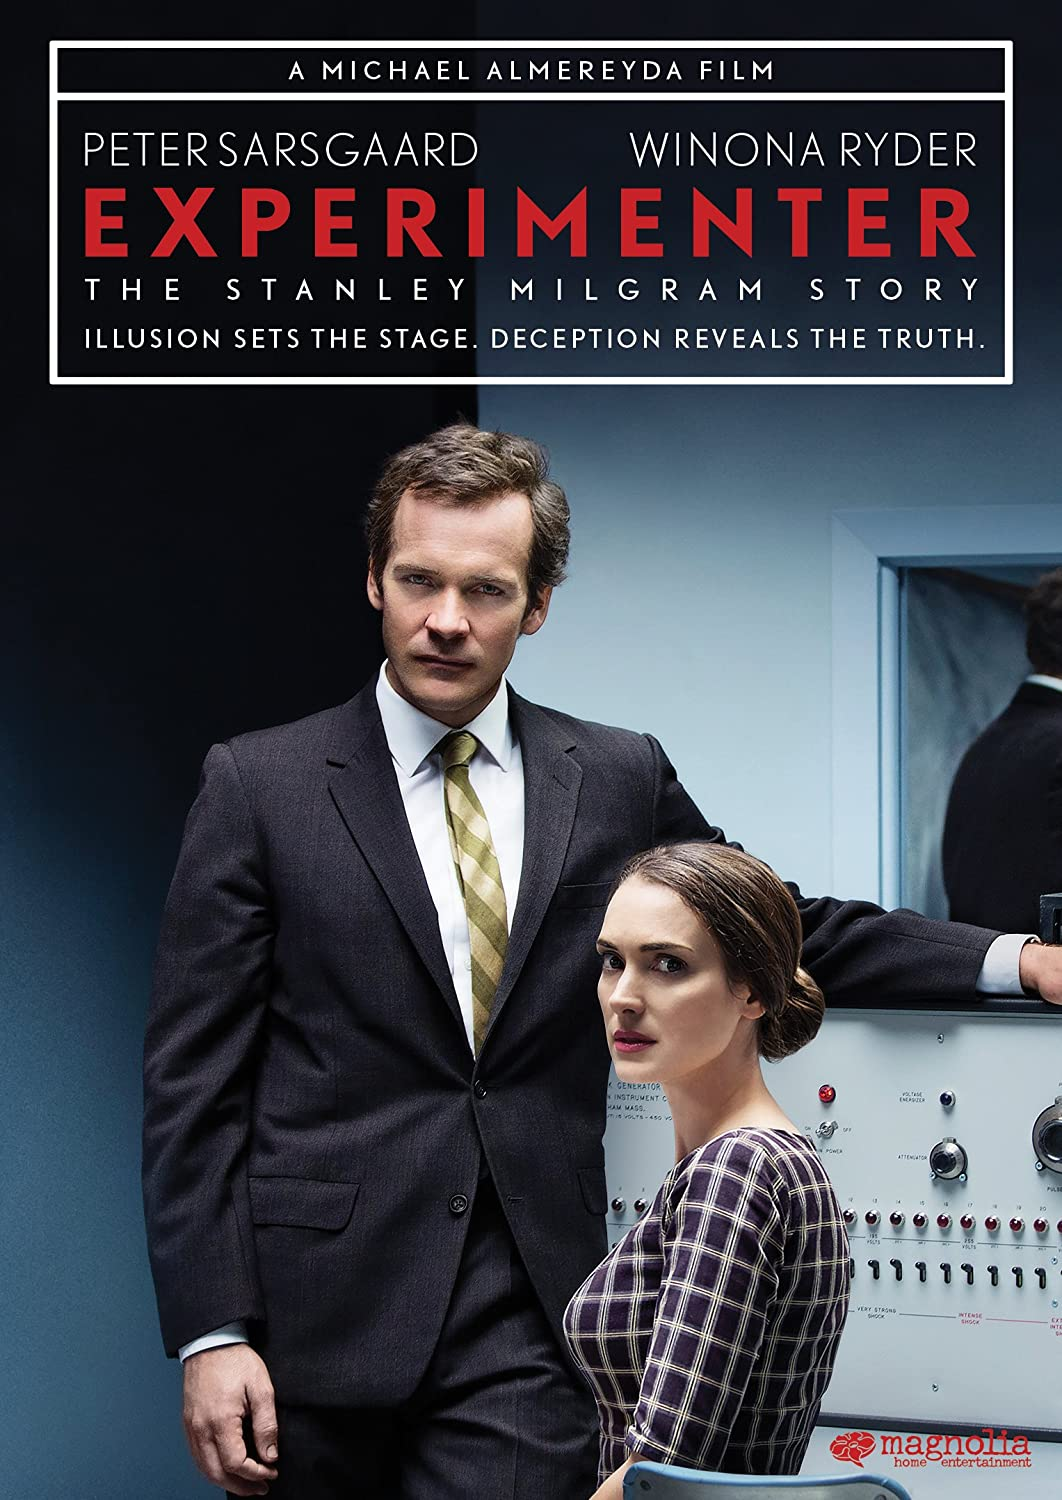 amazon com experimenter peter sarsgaard winona ryder michael